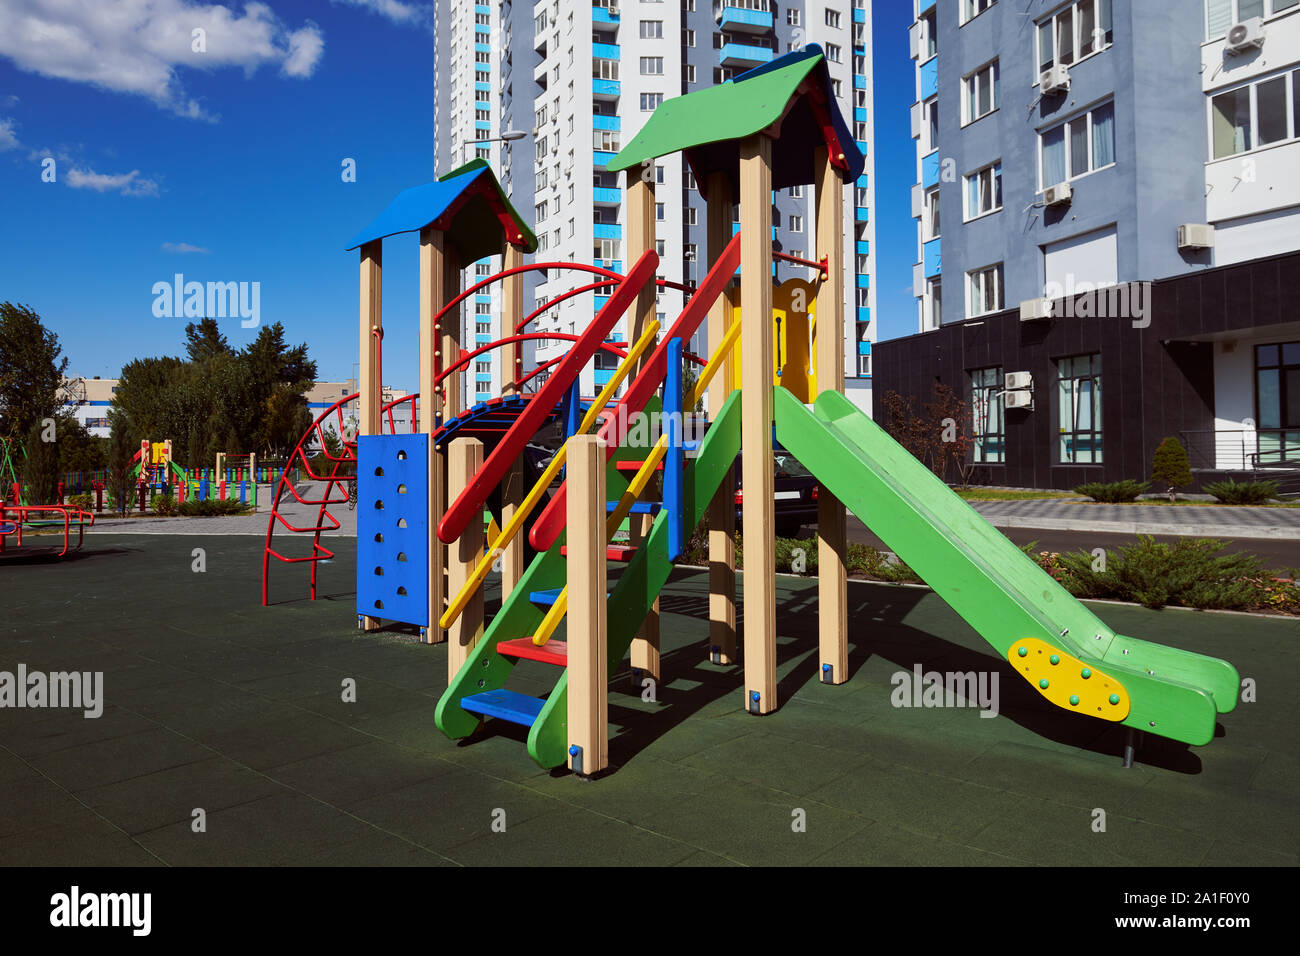 Empty colorful wooden children's slide with ladder on the playground. Attraction located in the yard against high-rise building and blue sky. Stock Photo